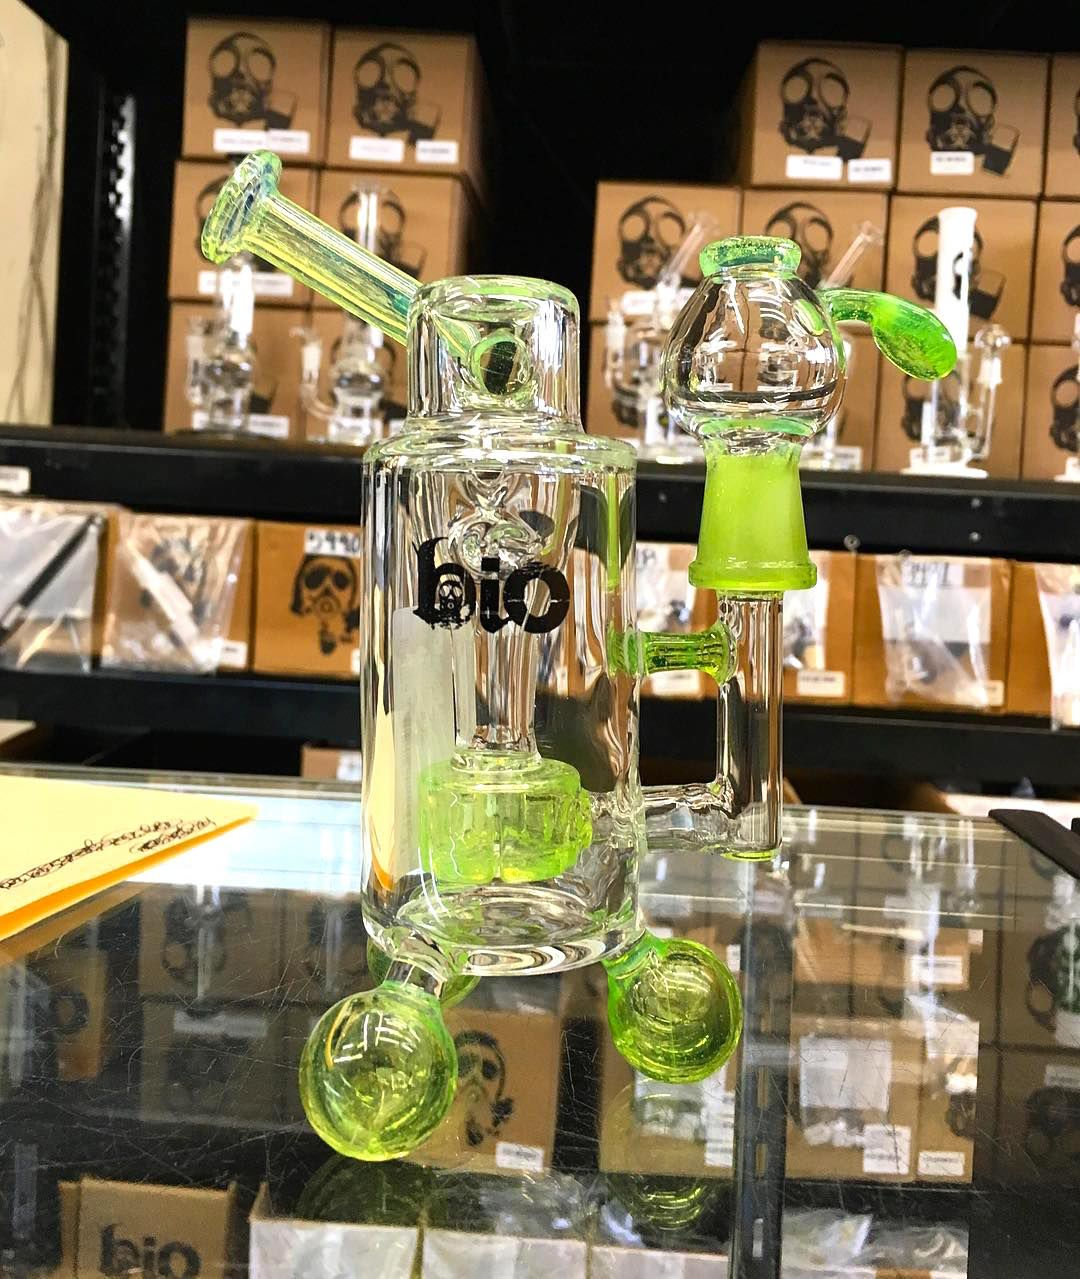 Trippy Green Dab Rig We Pin Unique And Bad Gl Bongs Rigs Water Pipes Check Out Our For On Www Smokehut Co